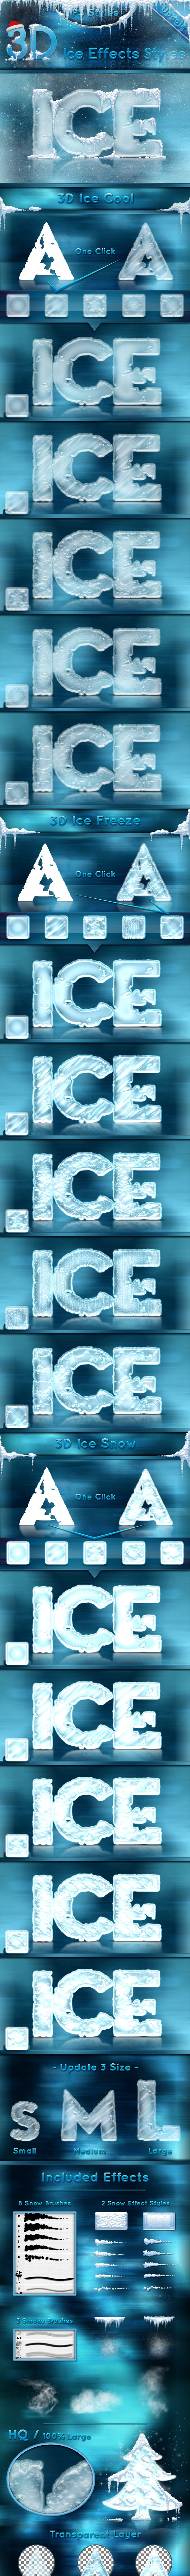 3D Ice Cool, Freeze & Snow Effects Styles - Styles Photoshop